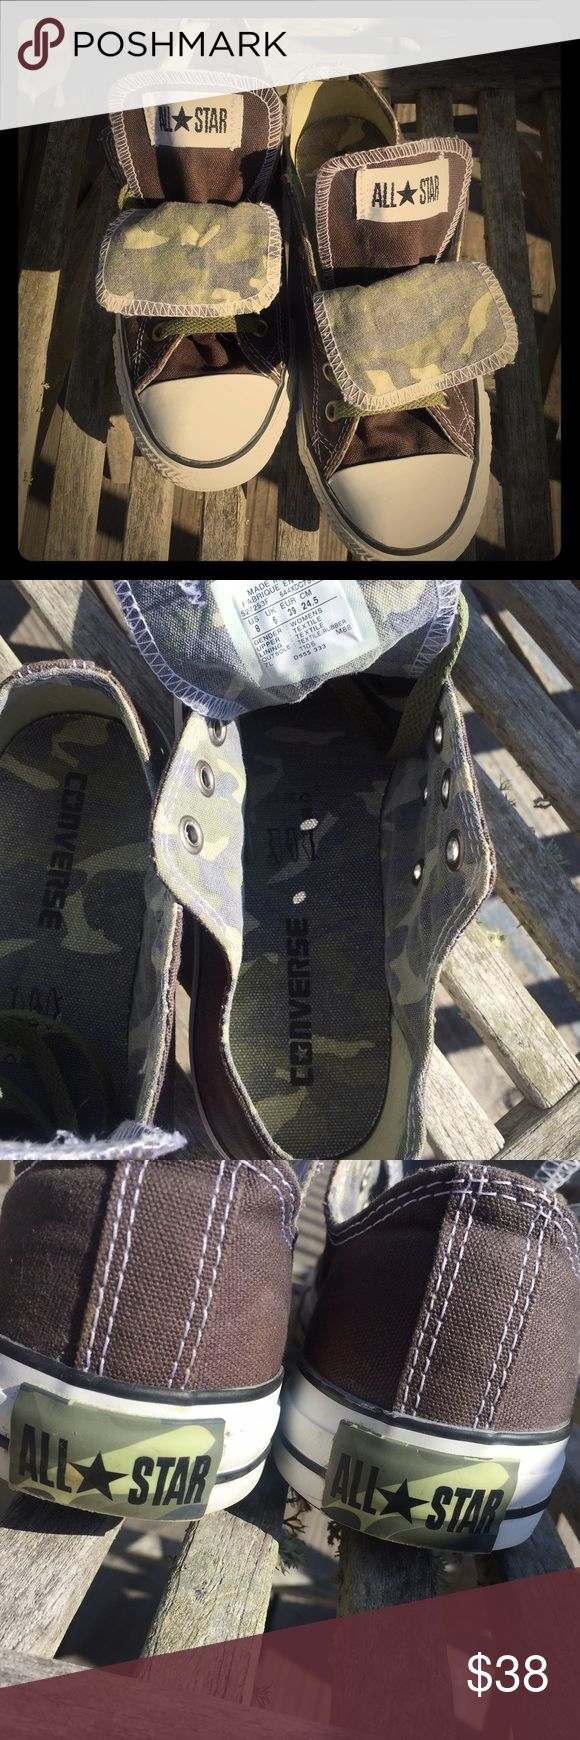 Camouflage Converse Camo Converse Size 8women/6men. Only worn a couple times, excellent condition. These are just the most awesome Chucks, It hurts to sell but they are too big for me. If anyone has this same pair in a size 7 I will happily trade. Converse Shoes Sneakers